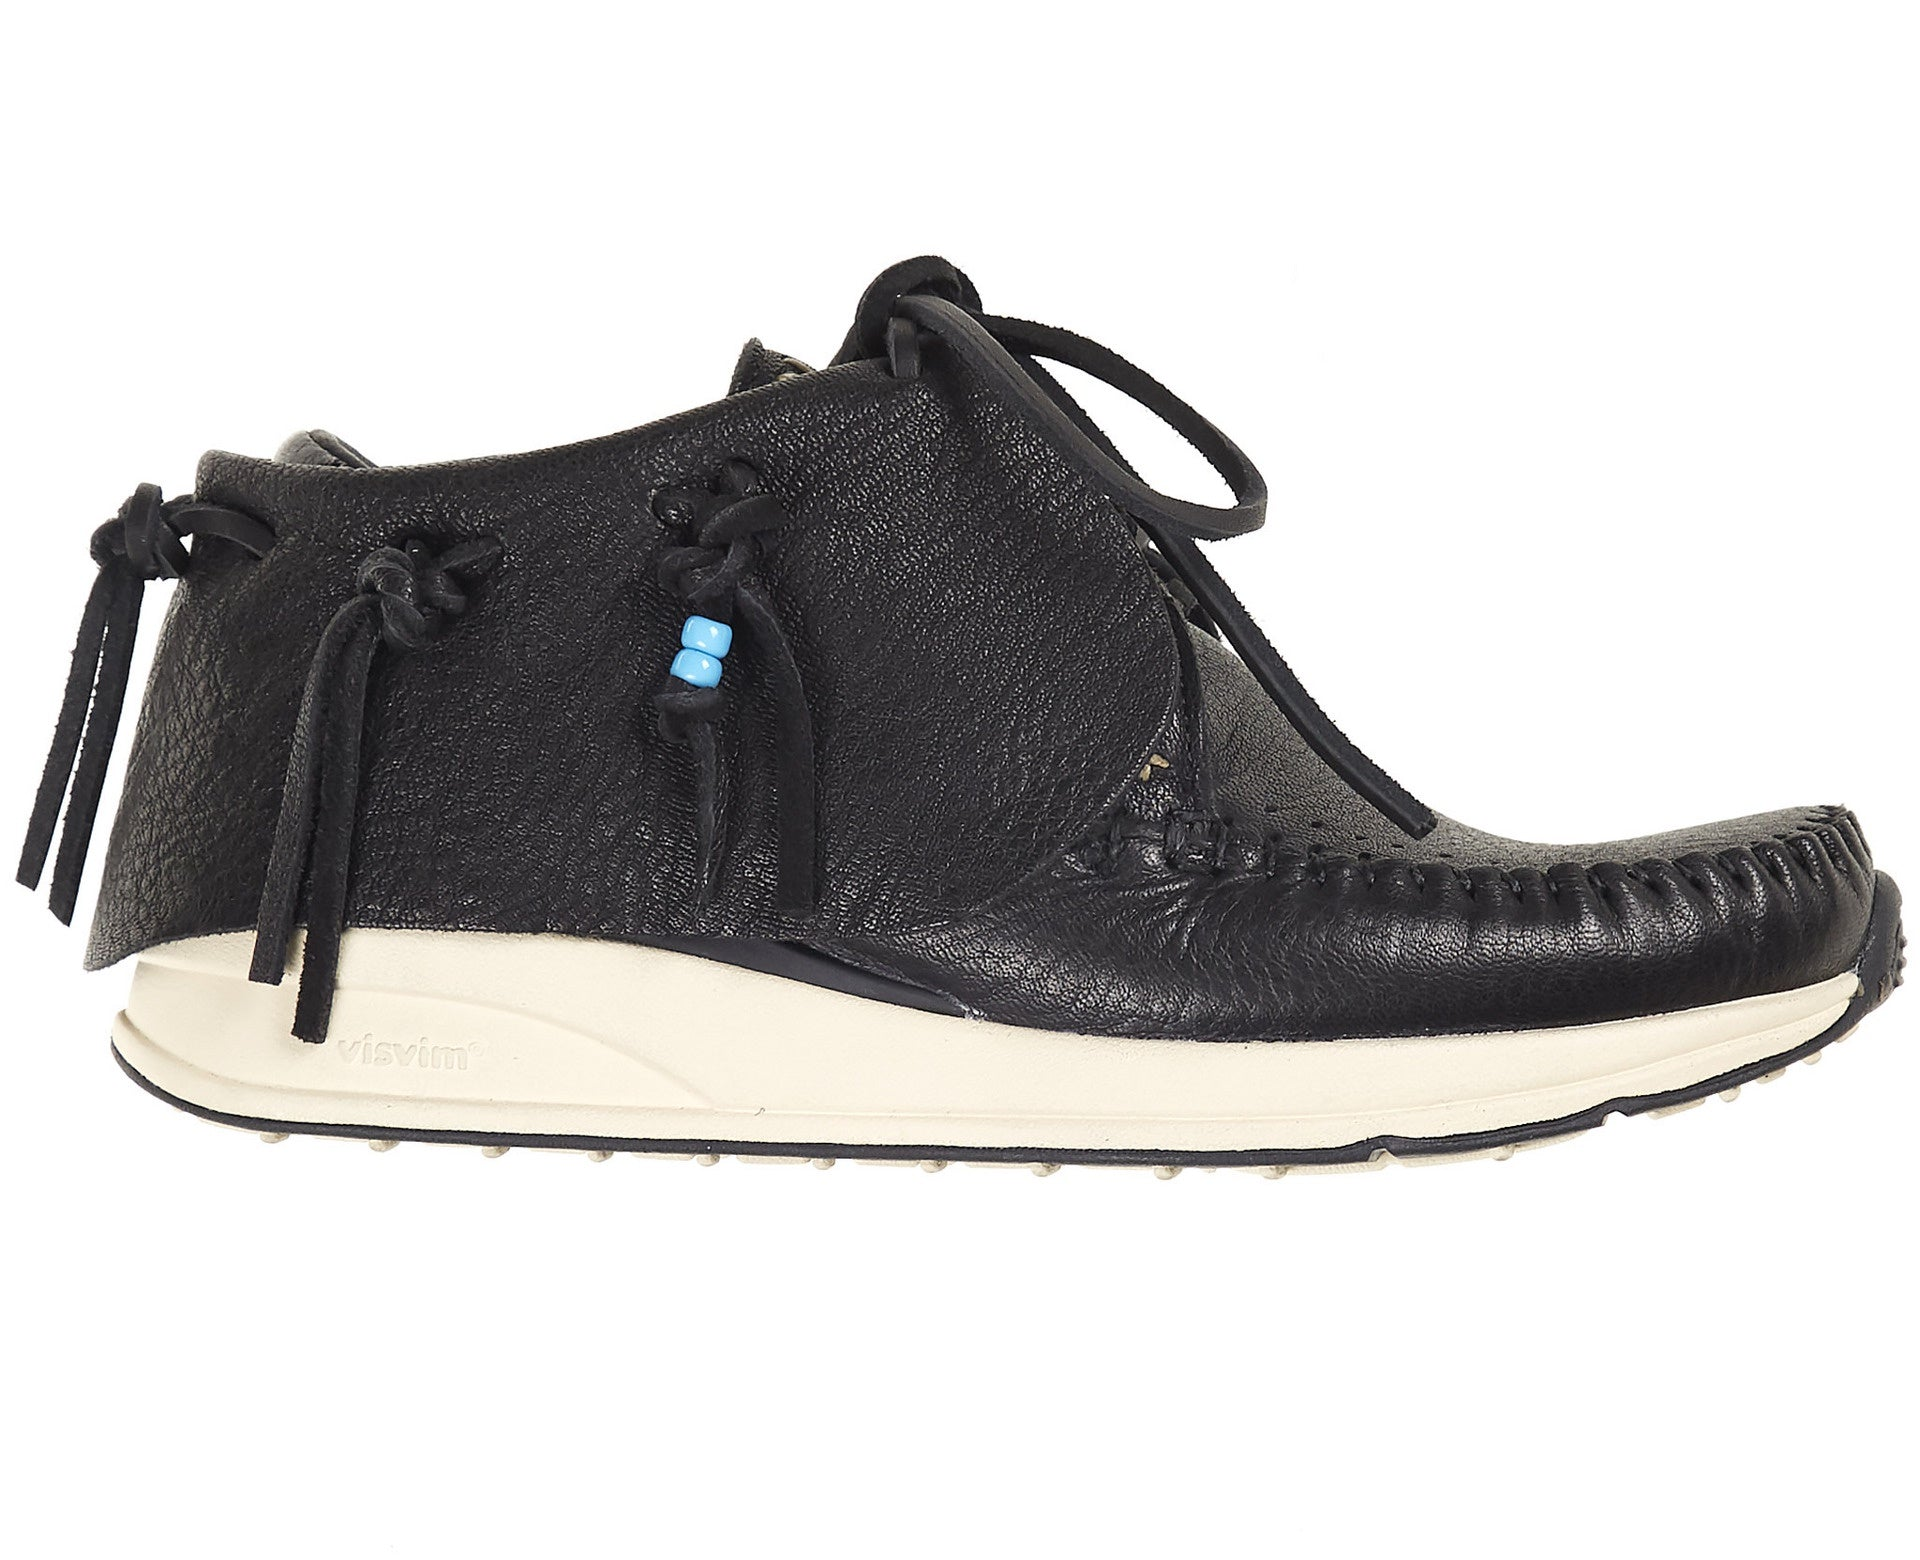 Visvim Women's FBT Red Deer Black